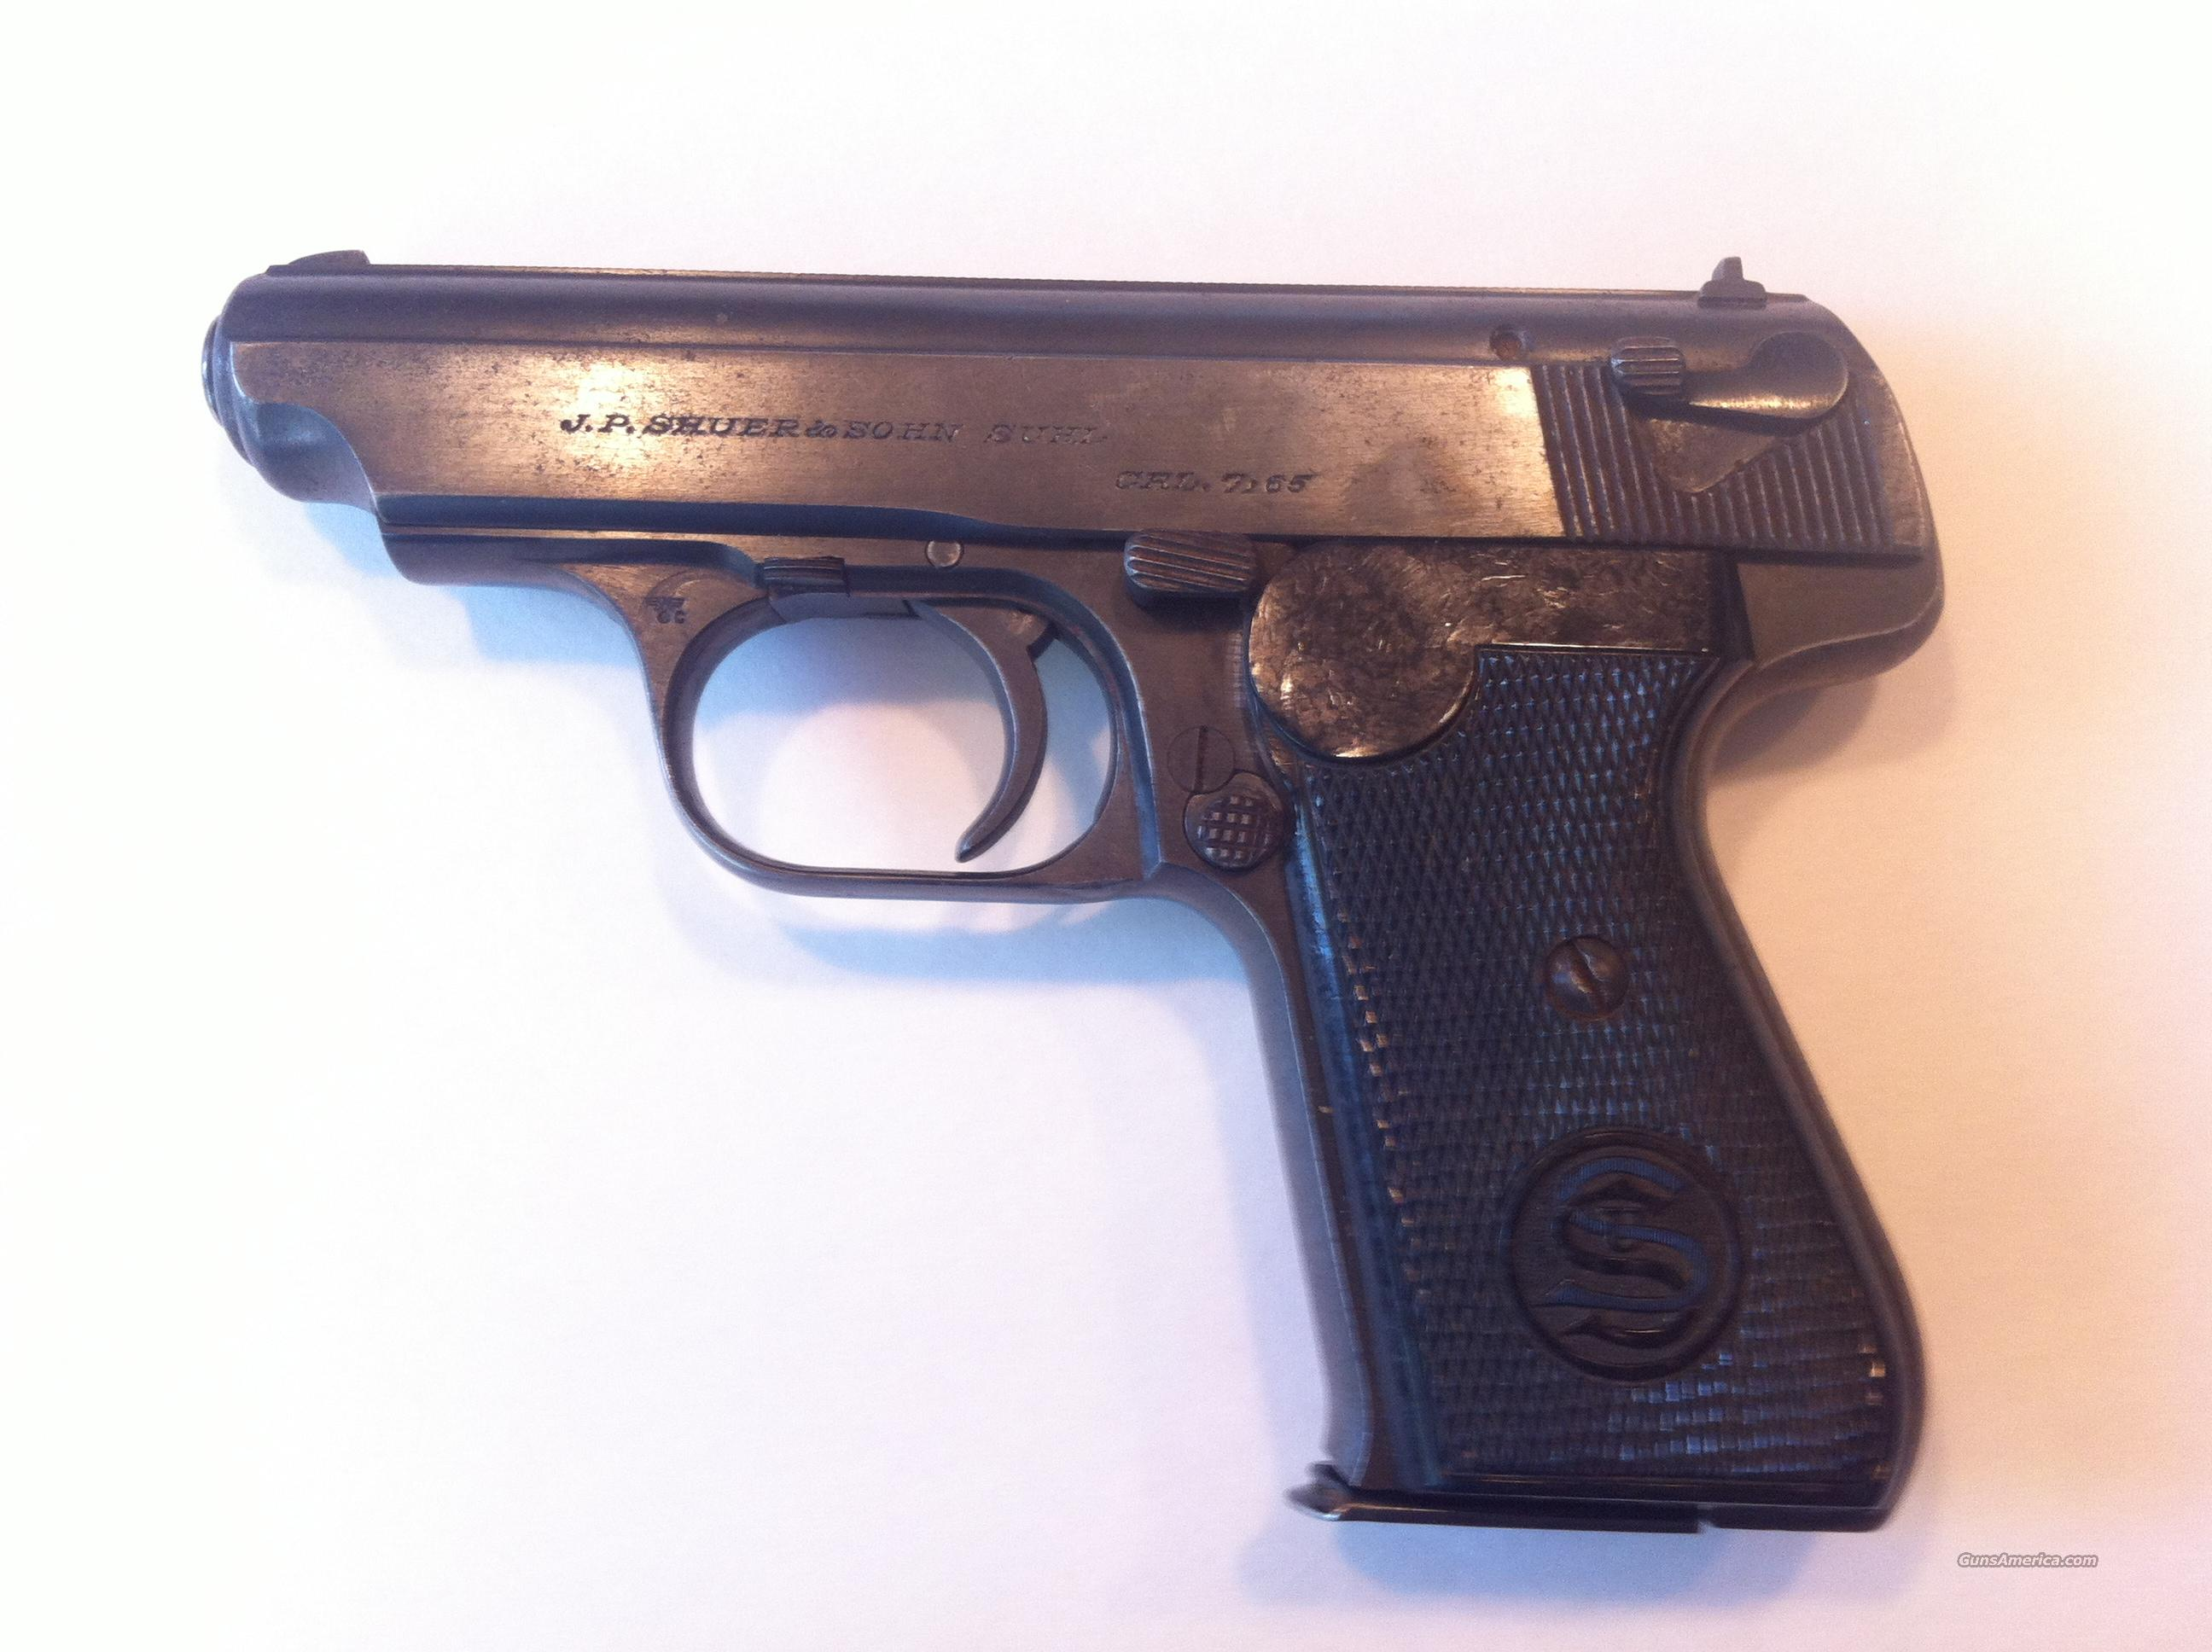 "WWII Nazi J.P. Sauer & Sohns 38H Police Pistol ""N & C marked"" Reduced from $625  Guns > Pistols > J.P Sauer Pistols"